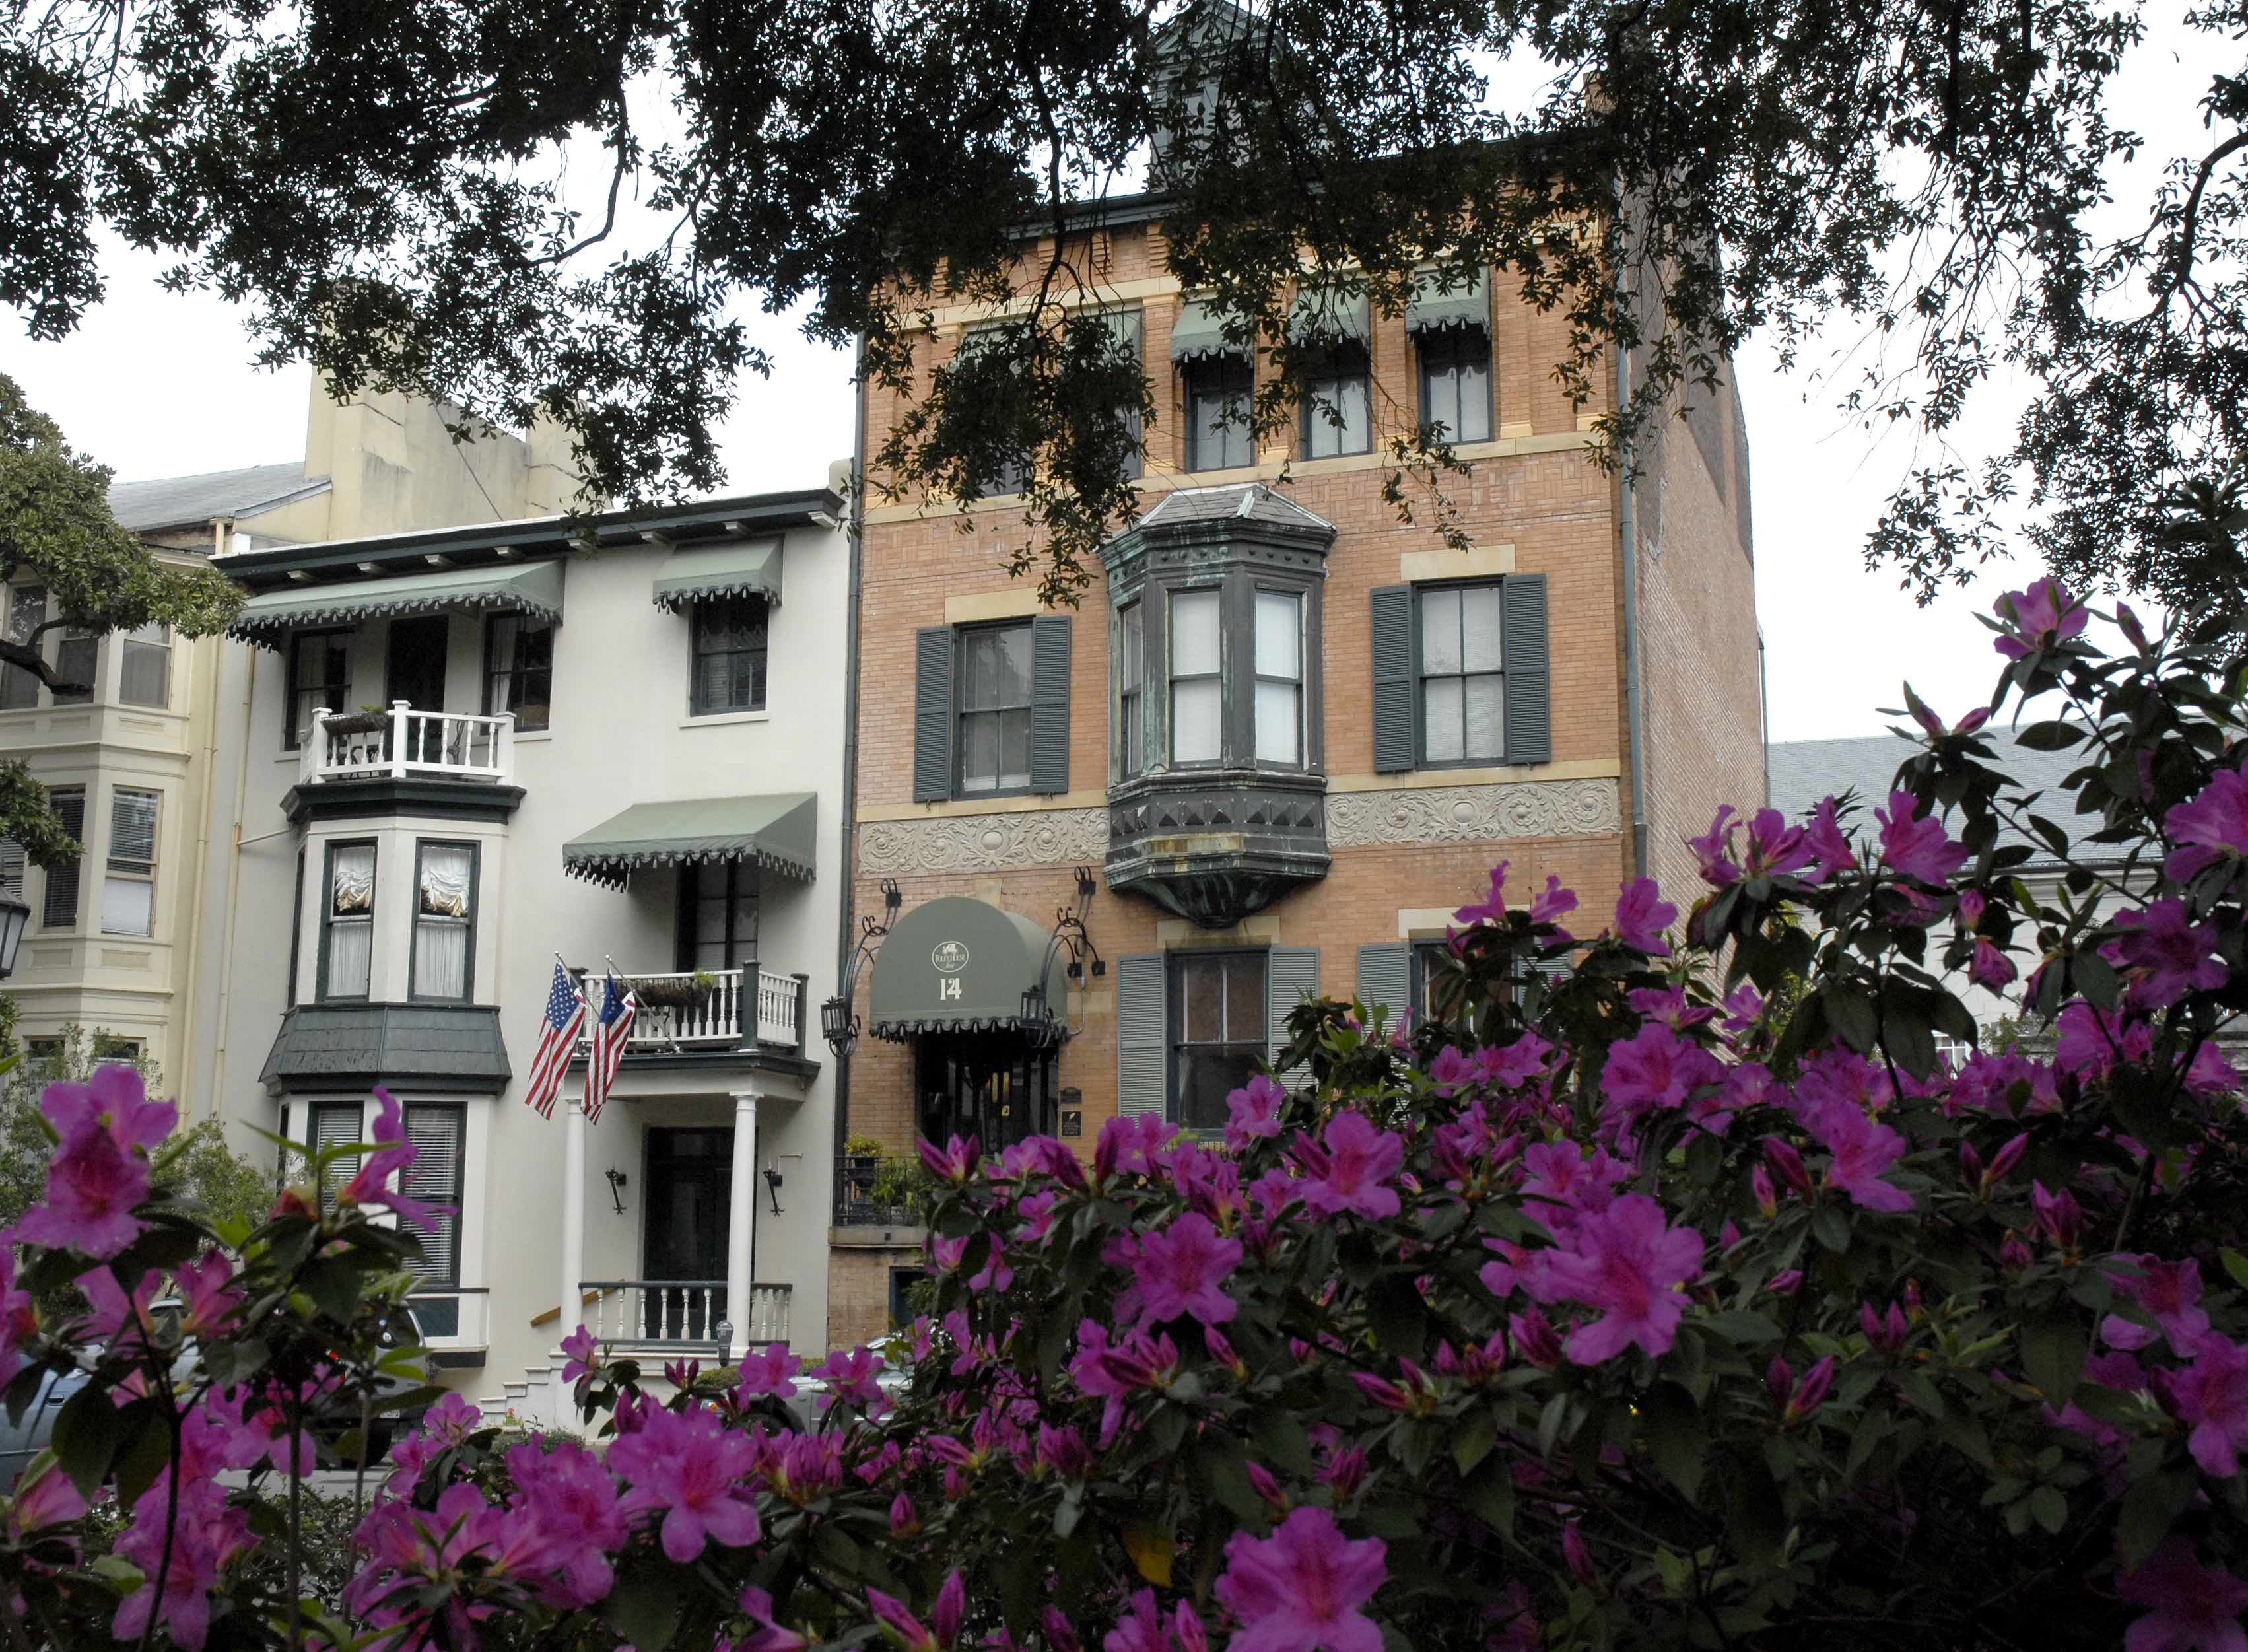 A pink flower is standing in front of a building at Foley House Inn.